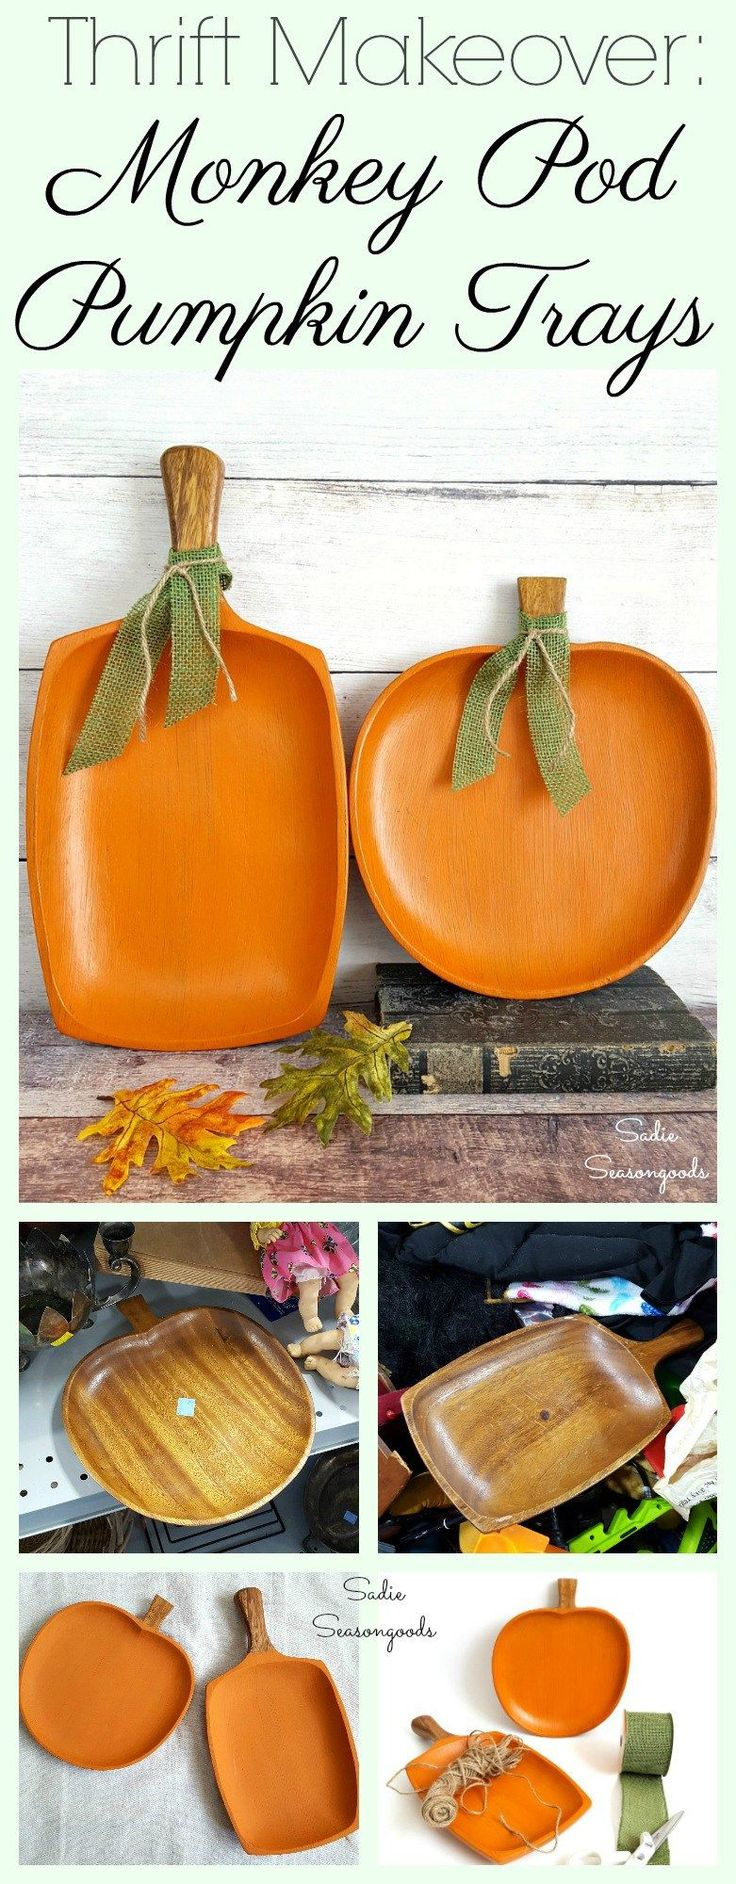 Vintage Monkey Pod wood trays and platters are common at thrift stores, and they come in any number of shapes. But even the plainest trays *might* look like pumpkins with an easy, rustic makeover! With some orange chalk paint, green burlap ribbon, and jute twine, a monkey pod wood tray is easily repurposed and upcycled into farmhouse style pumpkin decor!! Perfect for autumn and Thanksgiving - great upcycle repurpose DIY craft project from Sadie Seasongoods / www.sadieseasongoods.com